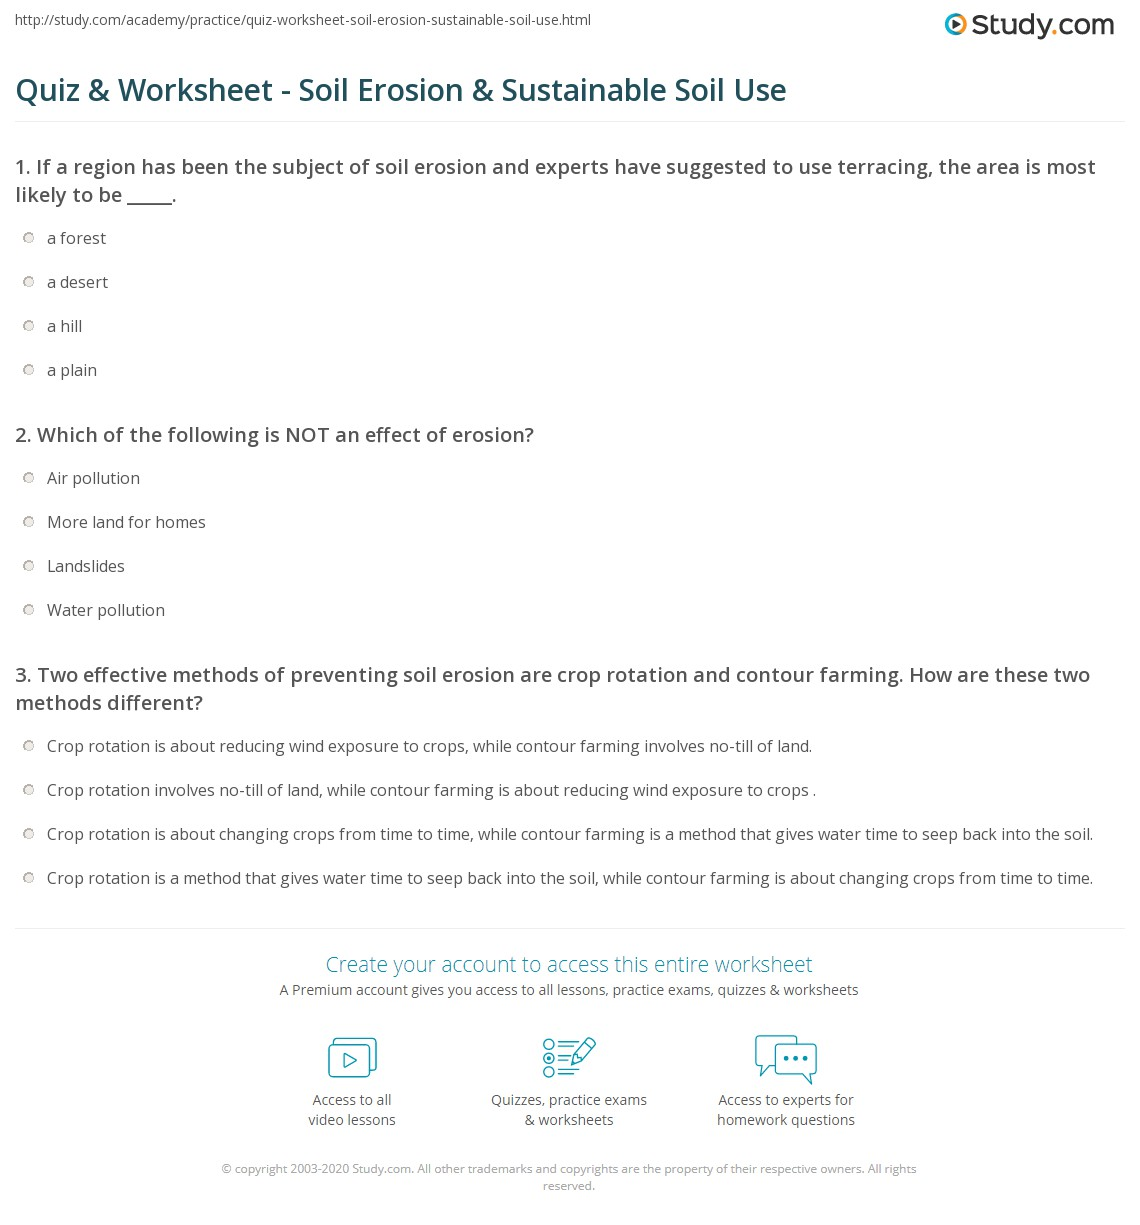 Quiz worksheet soil erosion sustainable soil use for Soil questions